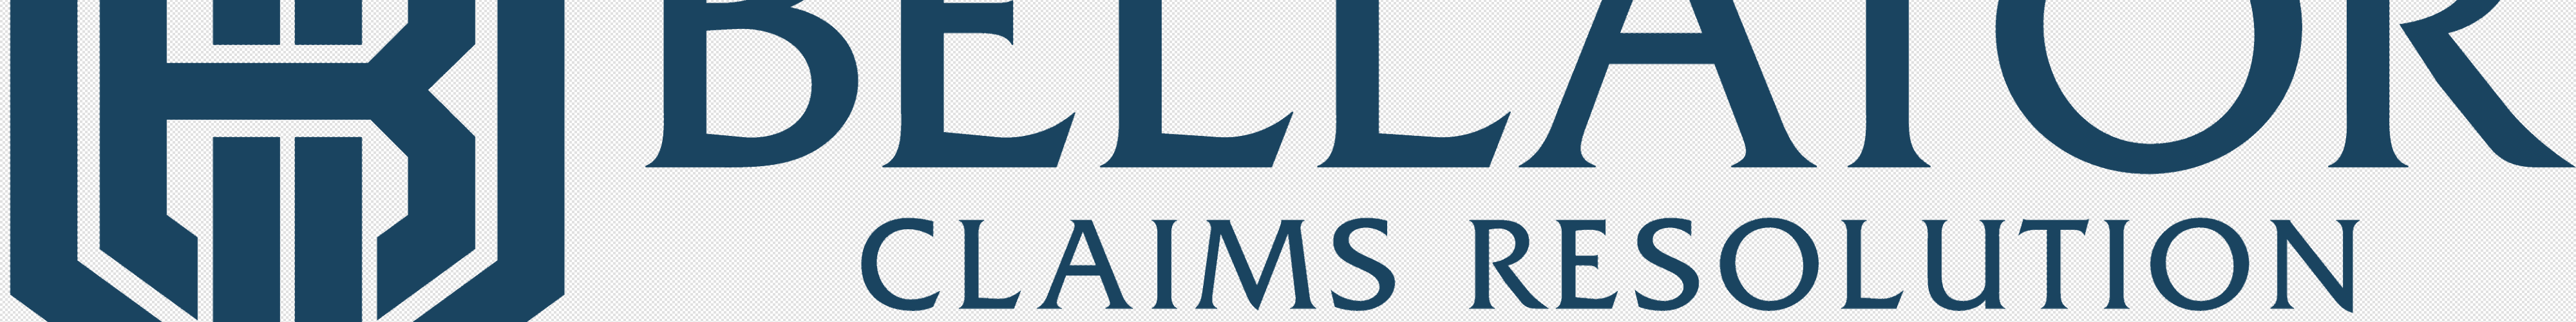 Public Adjusters Manage Property Insurance Claims - The ...